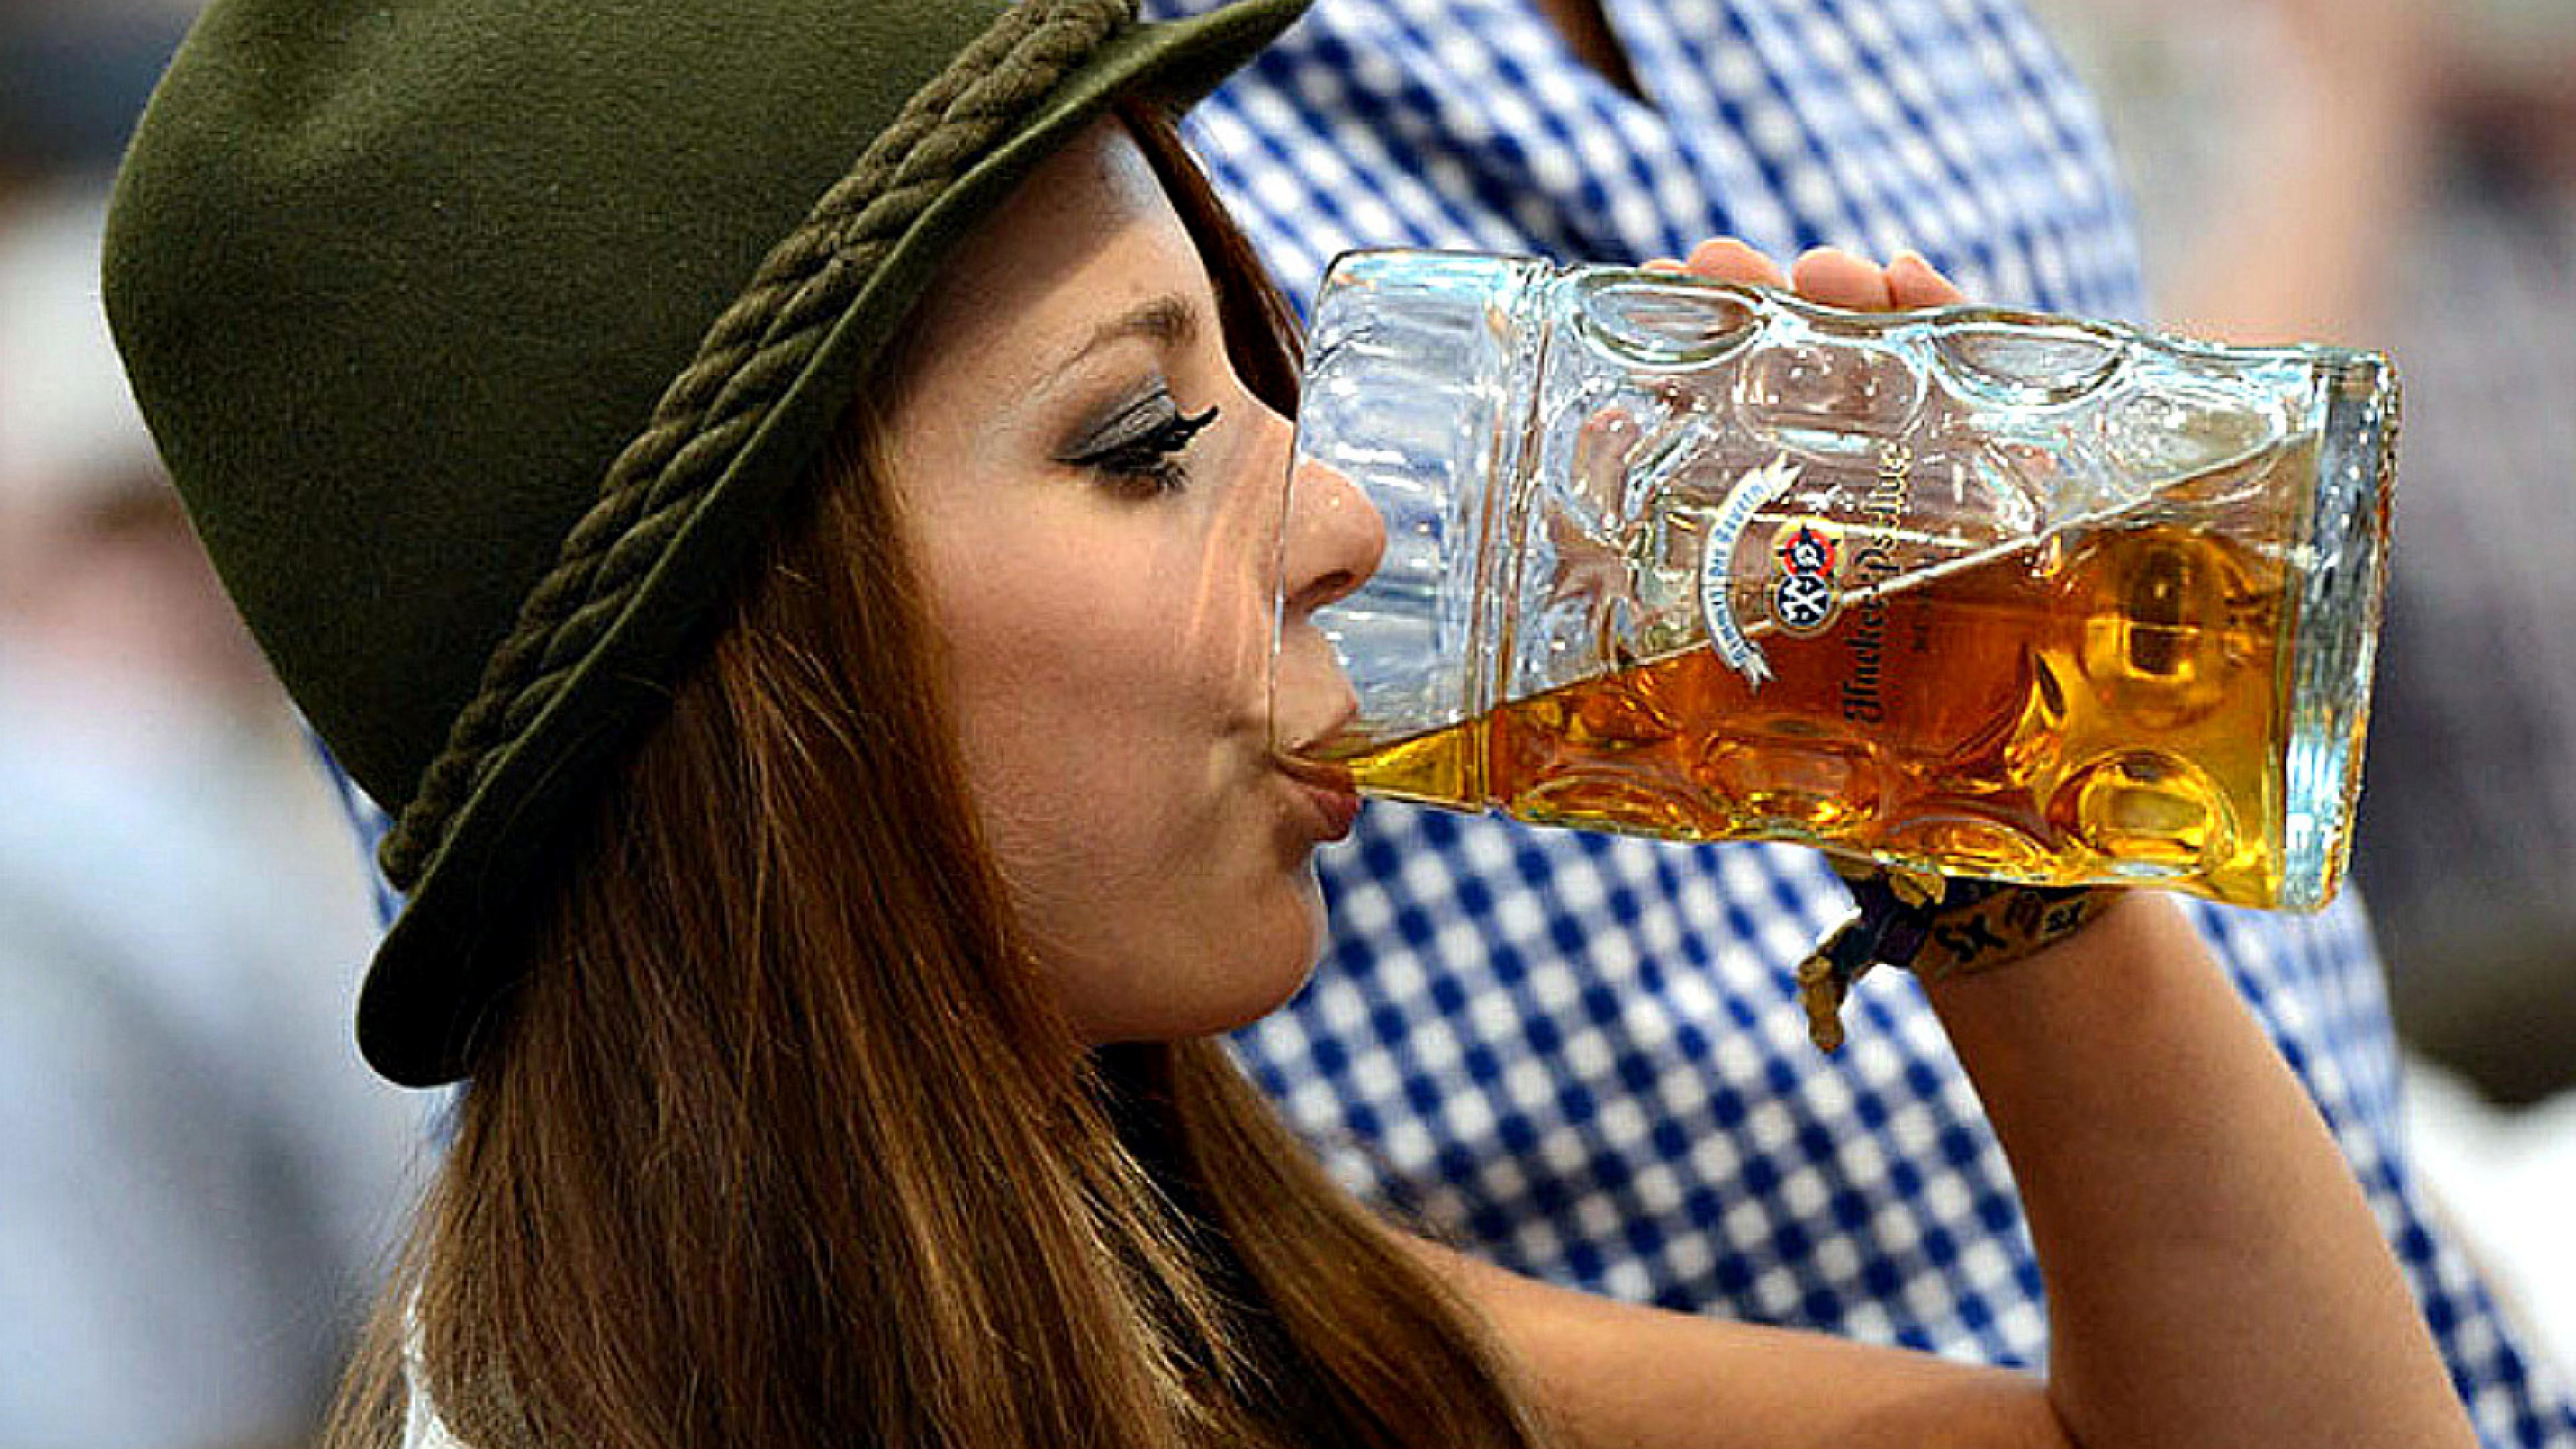 Oktoberfest Wallpapers Wallpapers High Quality Download 3840x2160